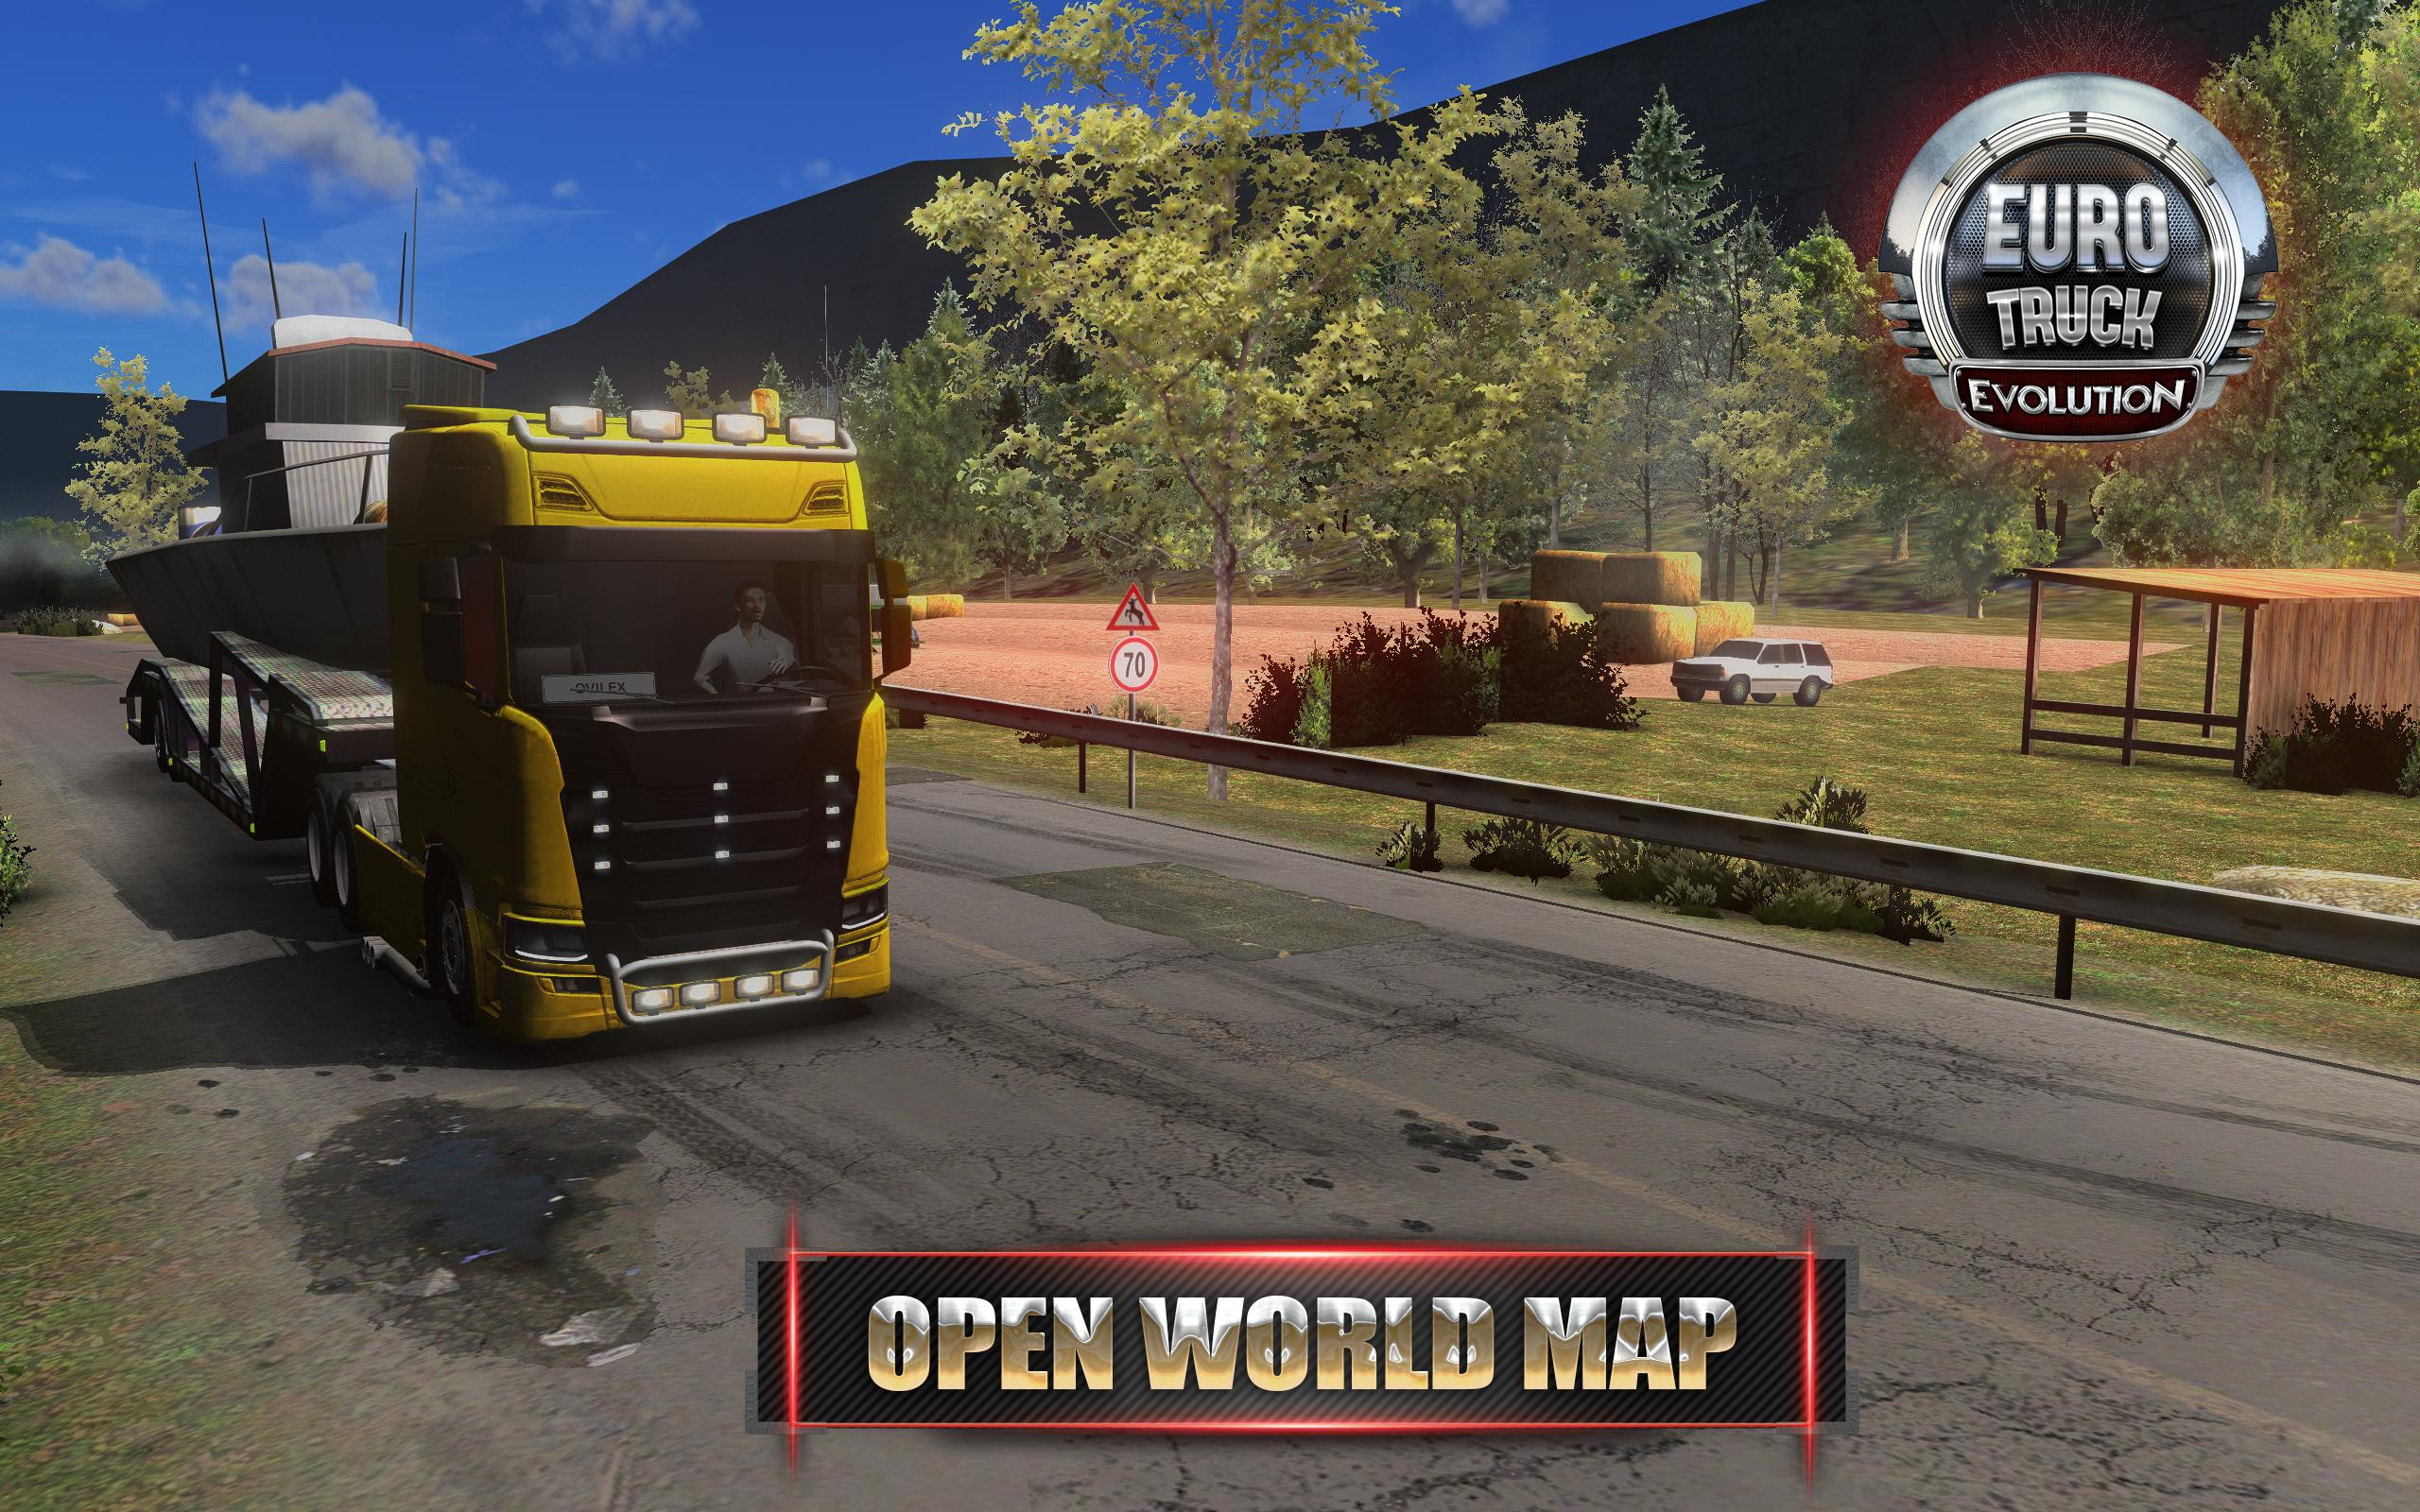 Euro Truck Evolution (Simulator) 3.1 Screenshot 6